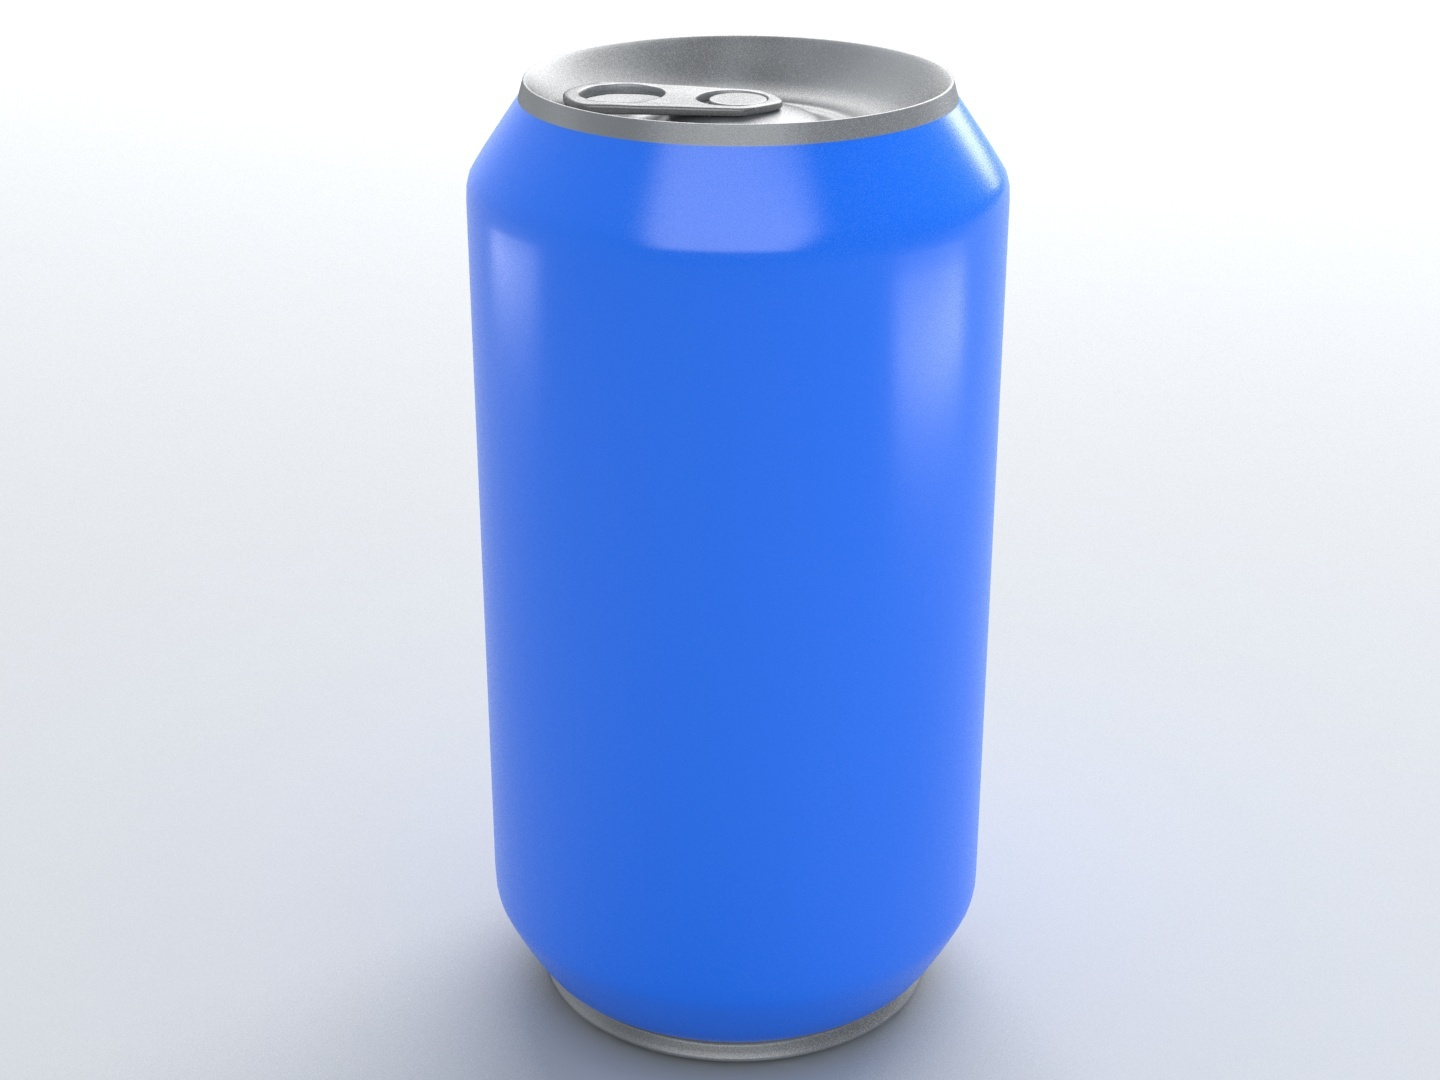 3d soda can 3d product design 3dsmax photoshop 3ds max design dribbble creative flat latest